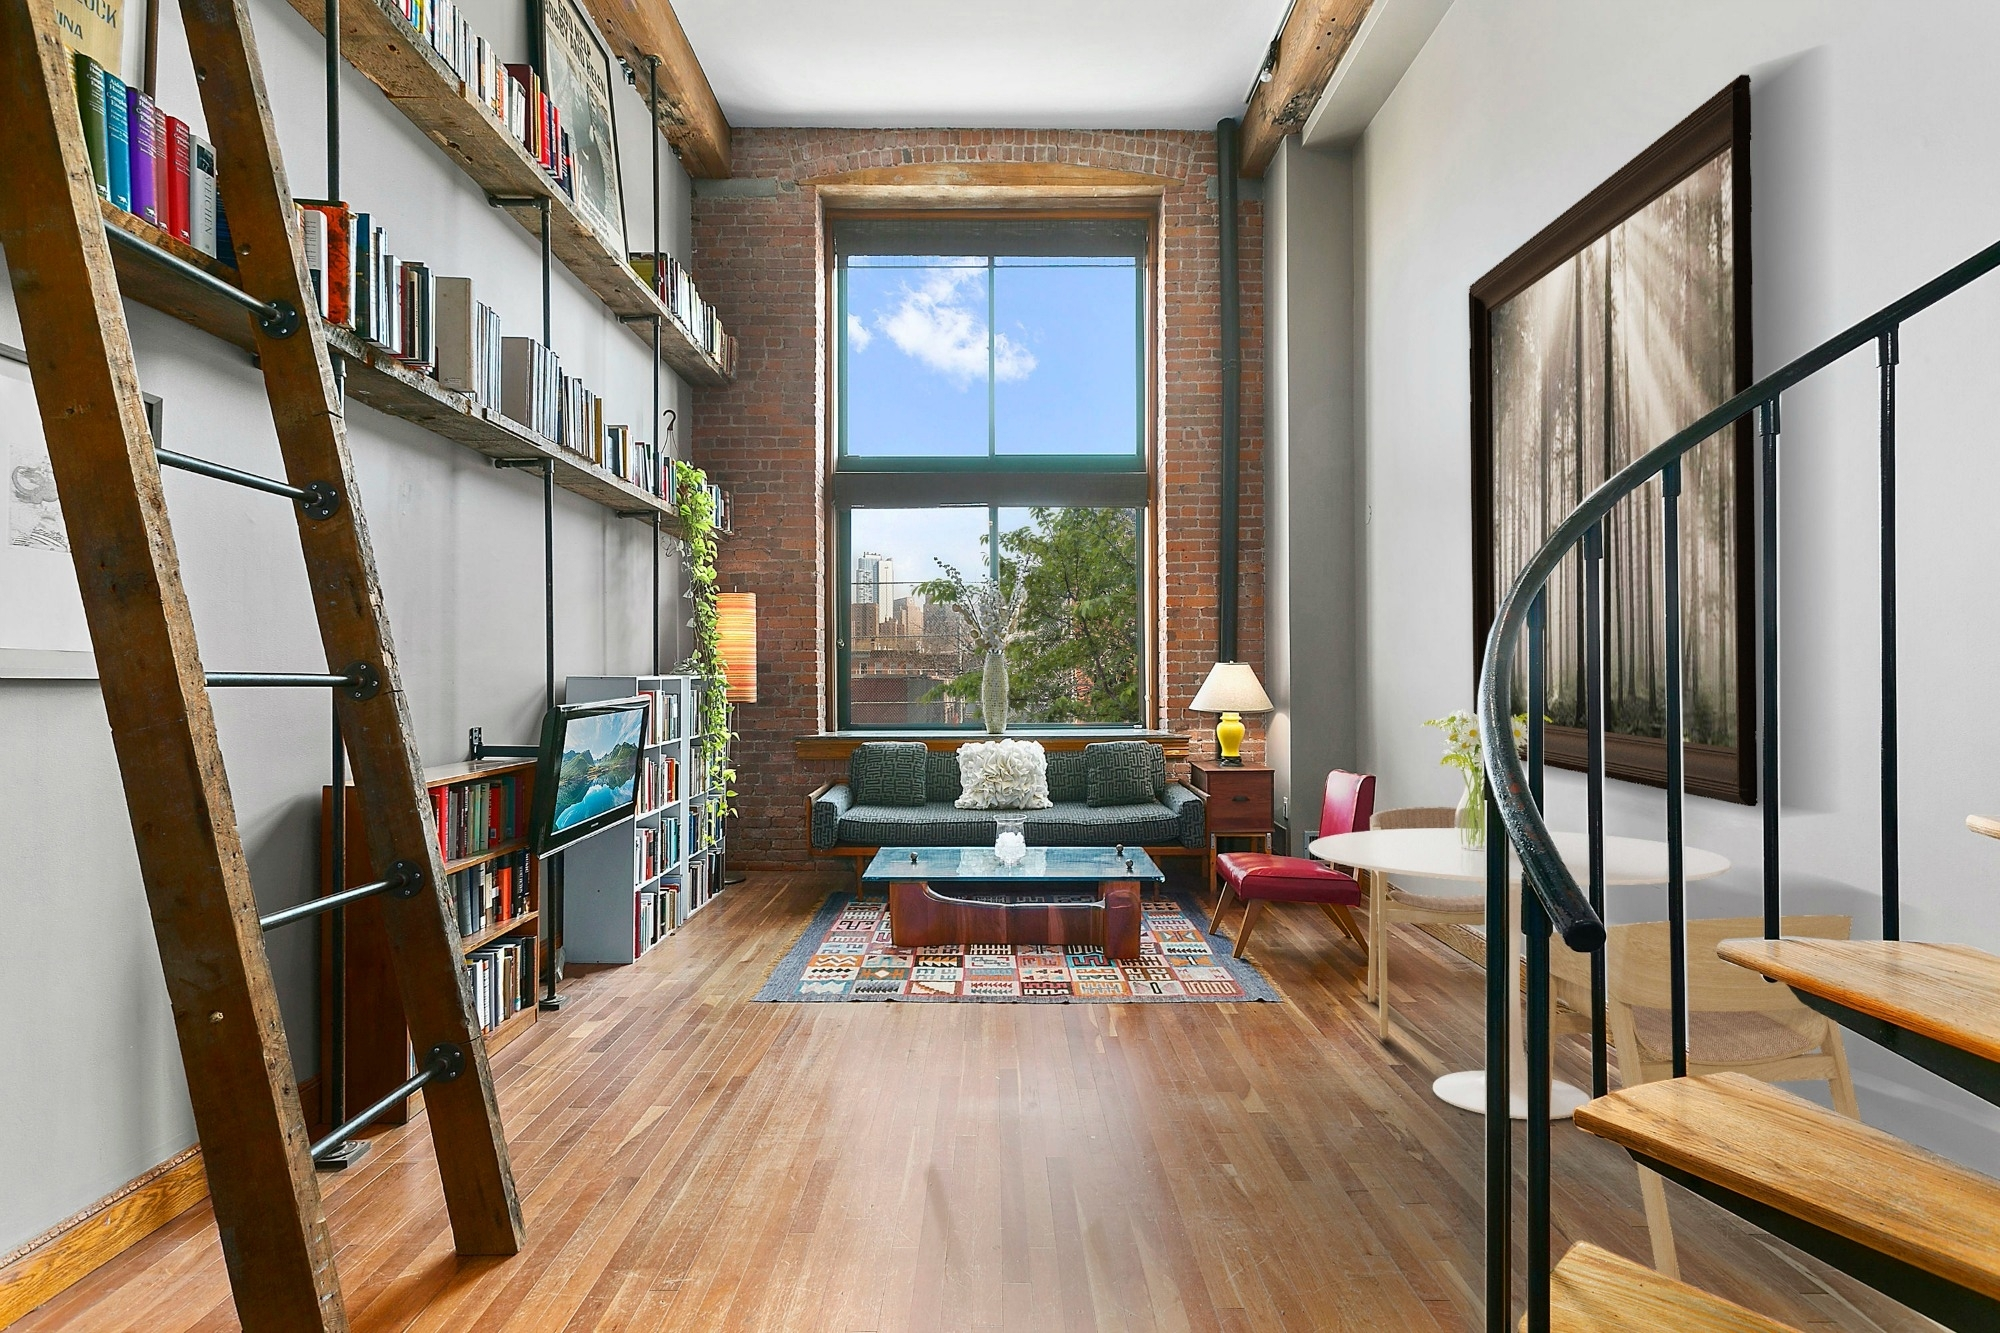 $770K Industrial Carroll Gardens Loft Is In A Converted 1938 Jute pertaining to Post Gardens Apartments